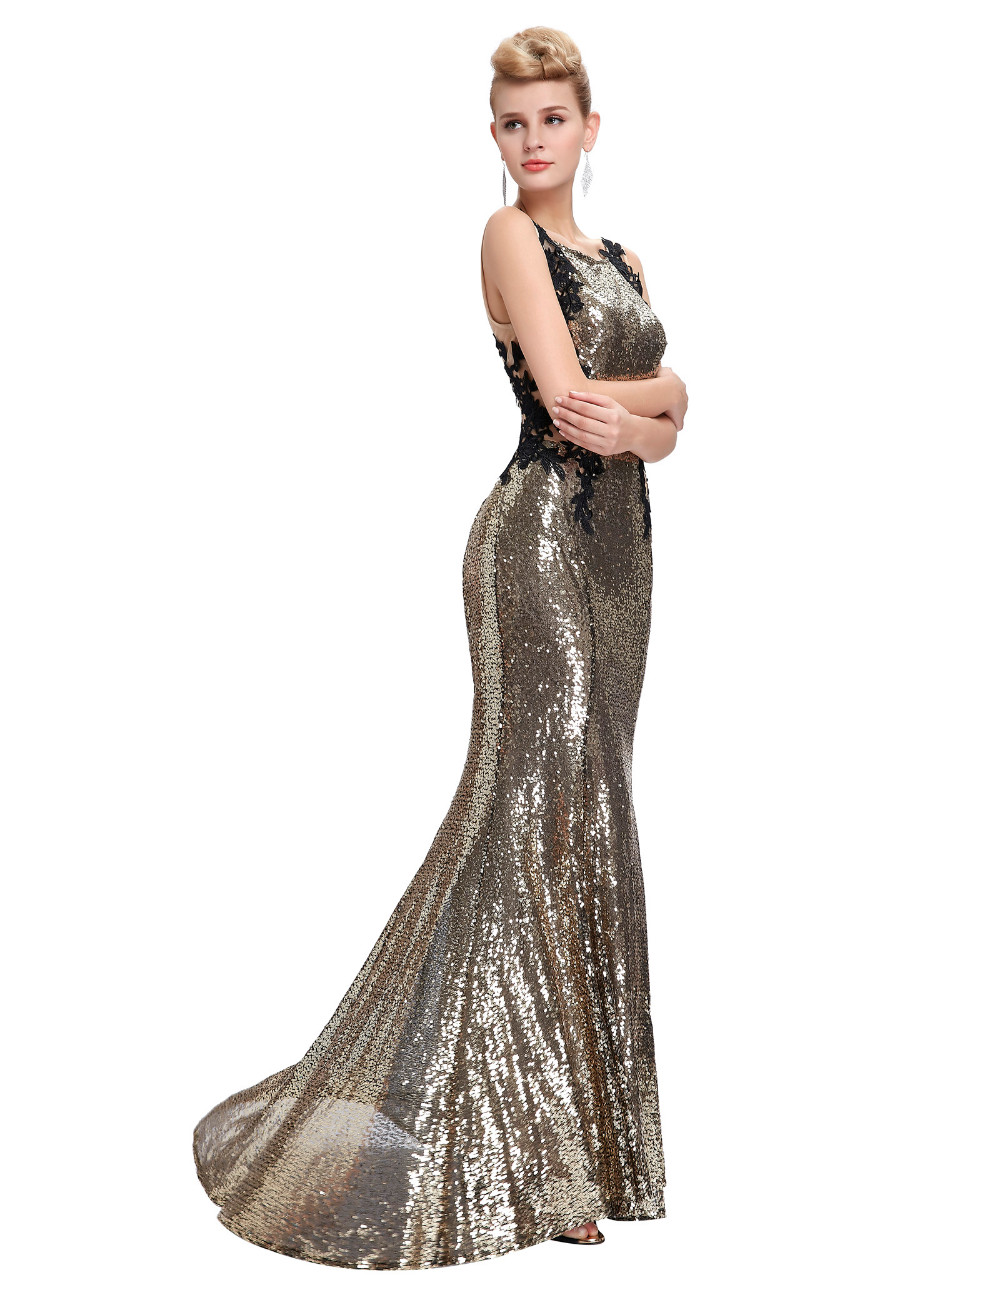 Kate Kasin Mermaid Bridesmaid Dresses Long Dress for Weddings Party Gown 2017 Grey Blue Black Sequin Bridesmaid Dress 0072 10